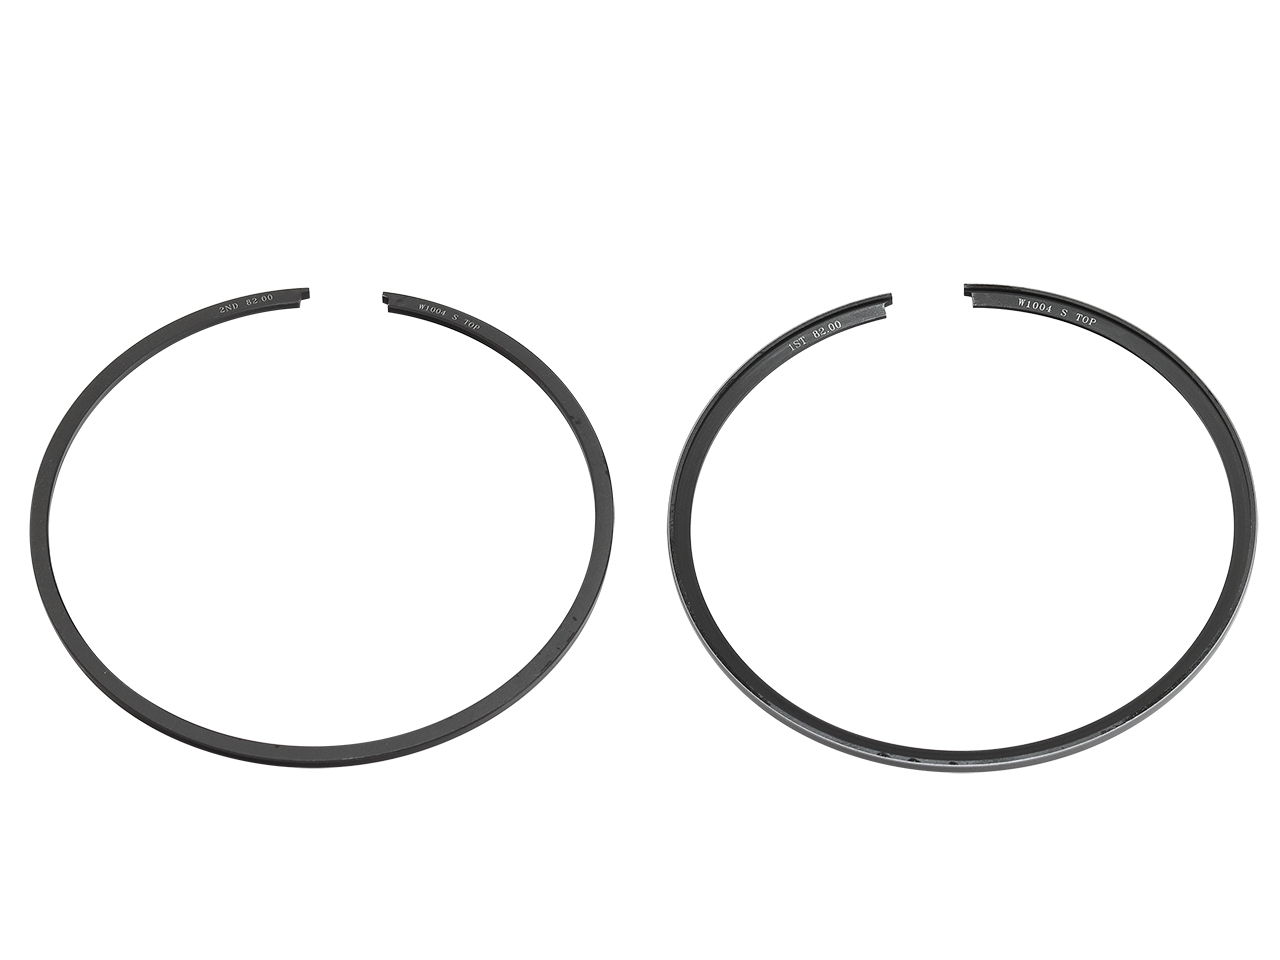 NAMURA PISTON RING NW-10004R